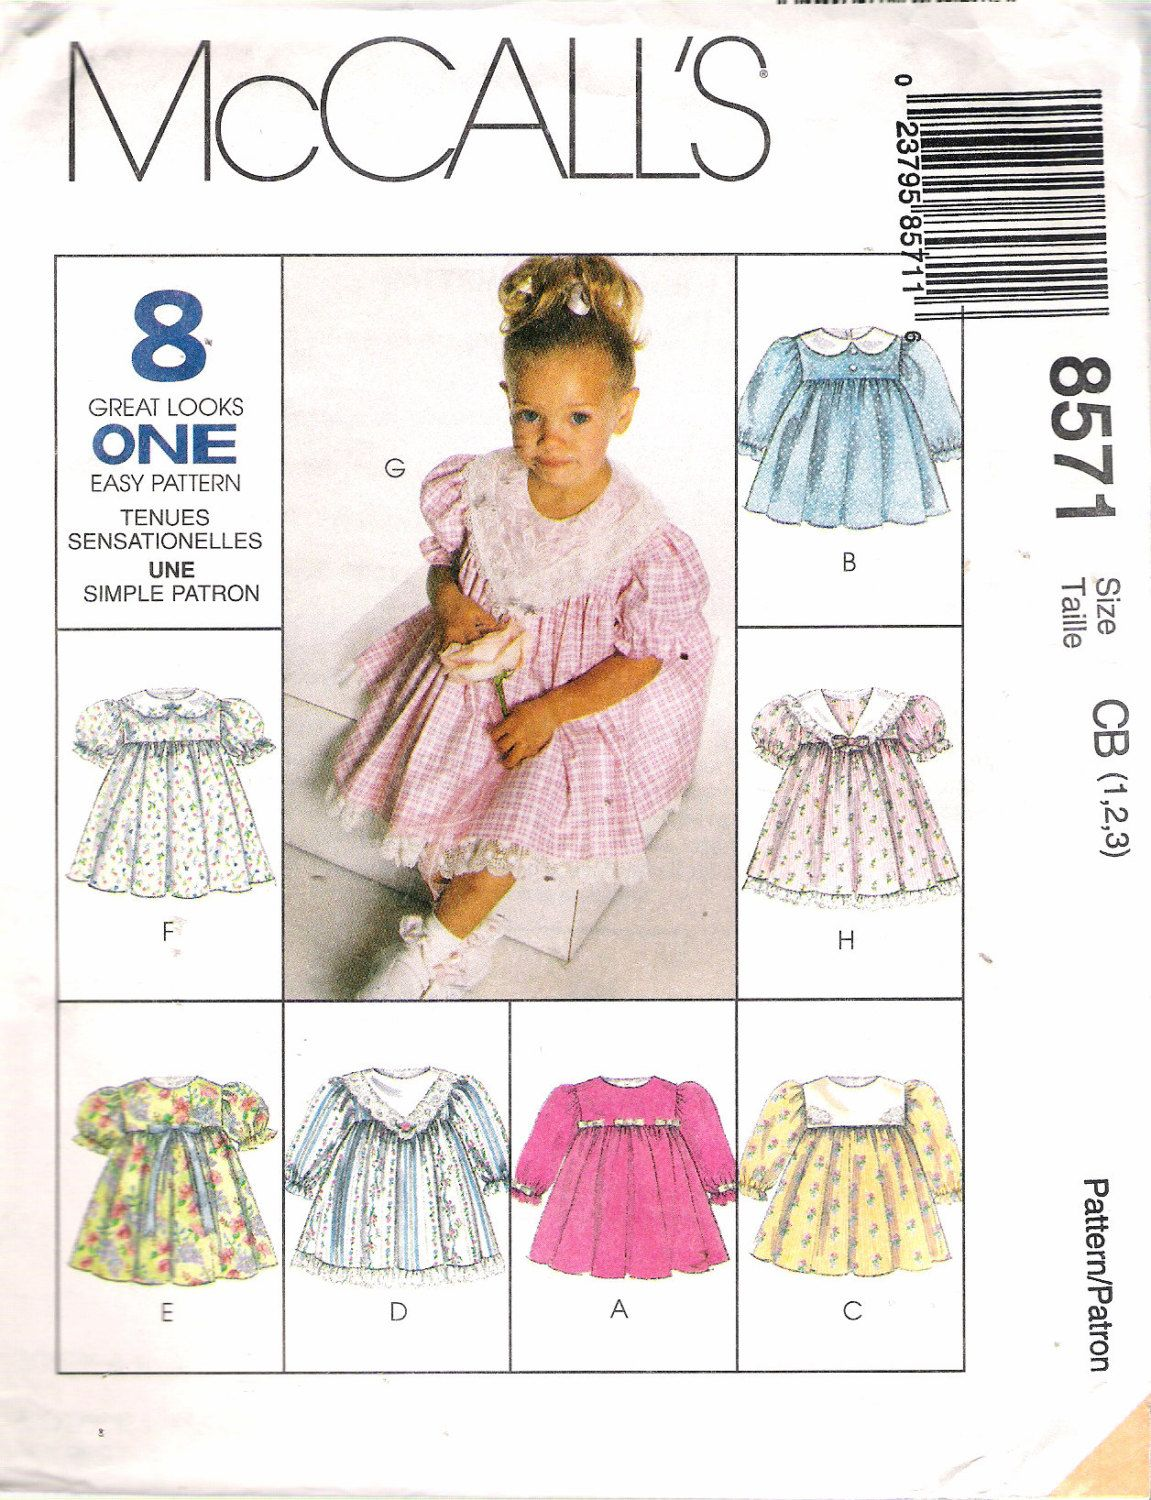 8571 McCalls Sewing Pattern Toddler Girls Dress 8 Great Looks Uncut Size 1 2 3